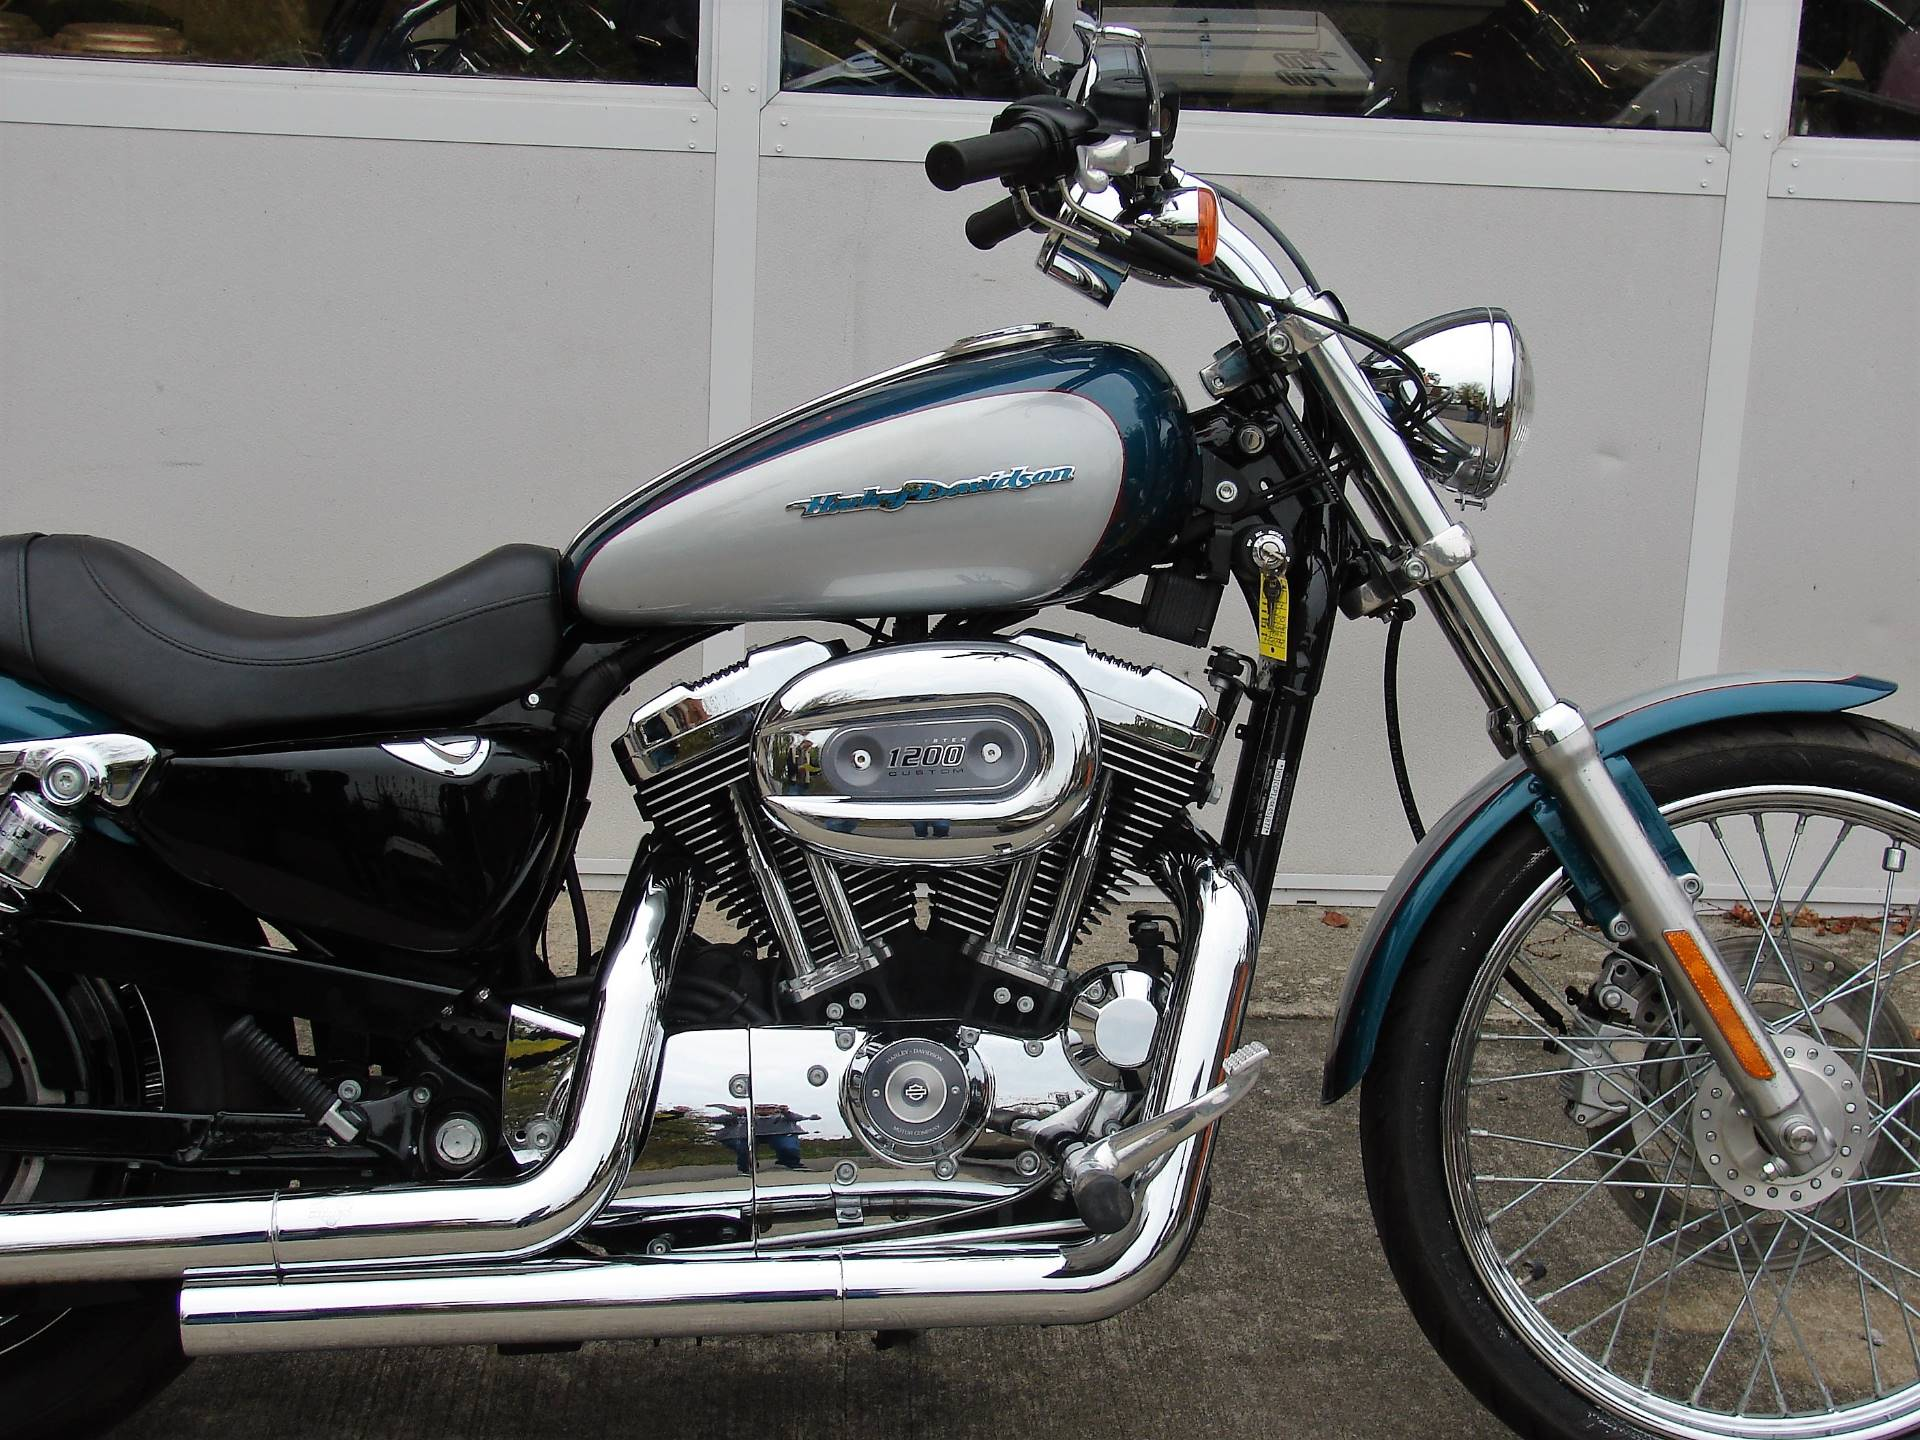 2004 Harley-Davidson Sportster XL 1200 Custom in Williamstown, New Jersey - Photo 2